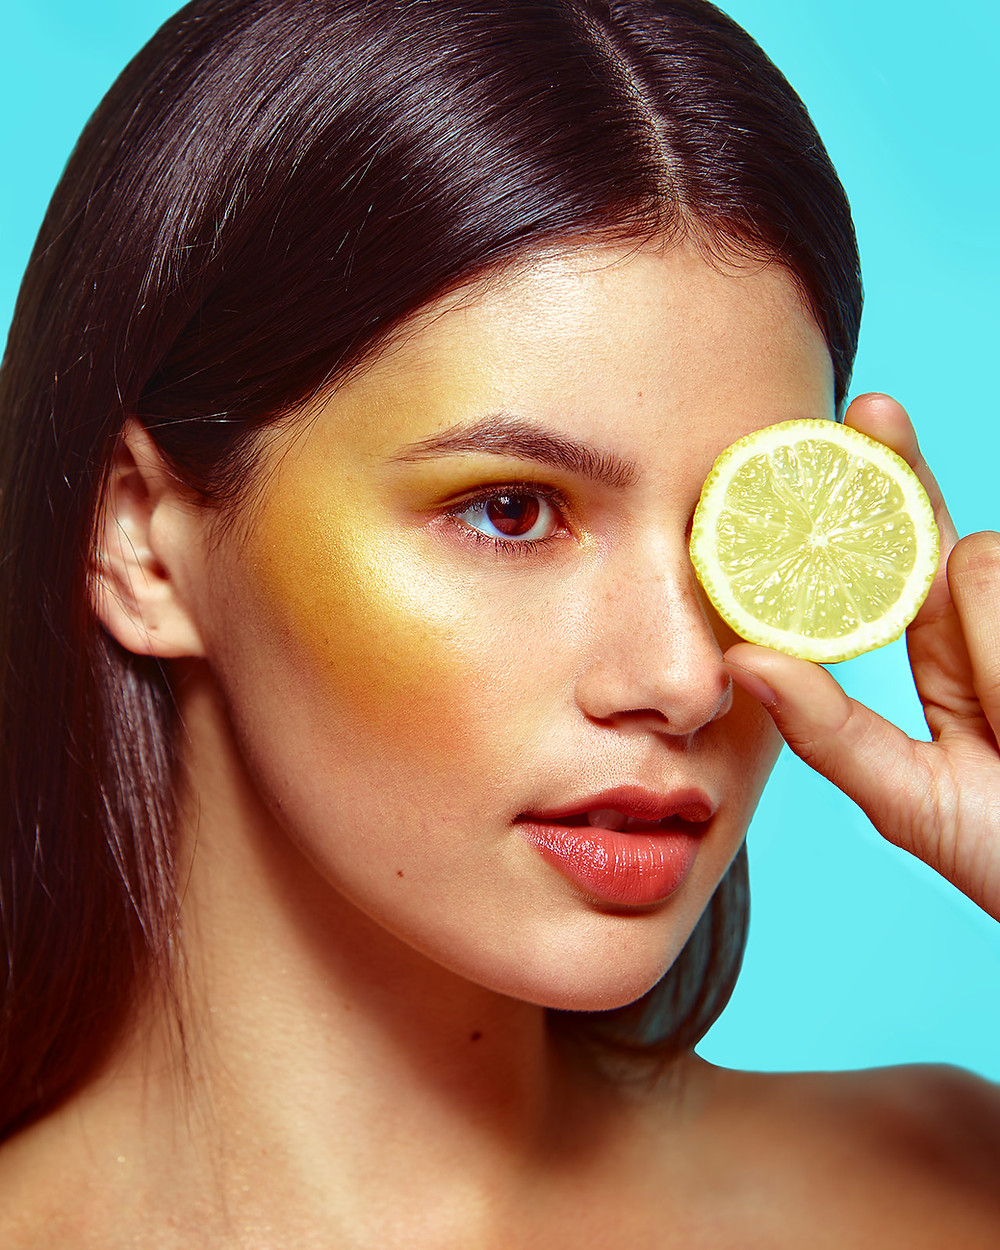 Model Genevieve van Dam holds a lemon over her eye in a fruit-inspired beauty editorial photo shoot published in New Face Fashion Magazine and photographed by commercial and fashion photographer Patrick Patton.